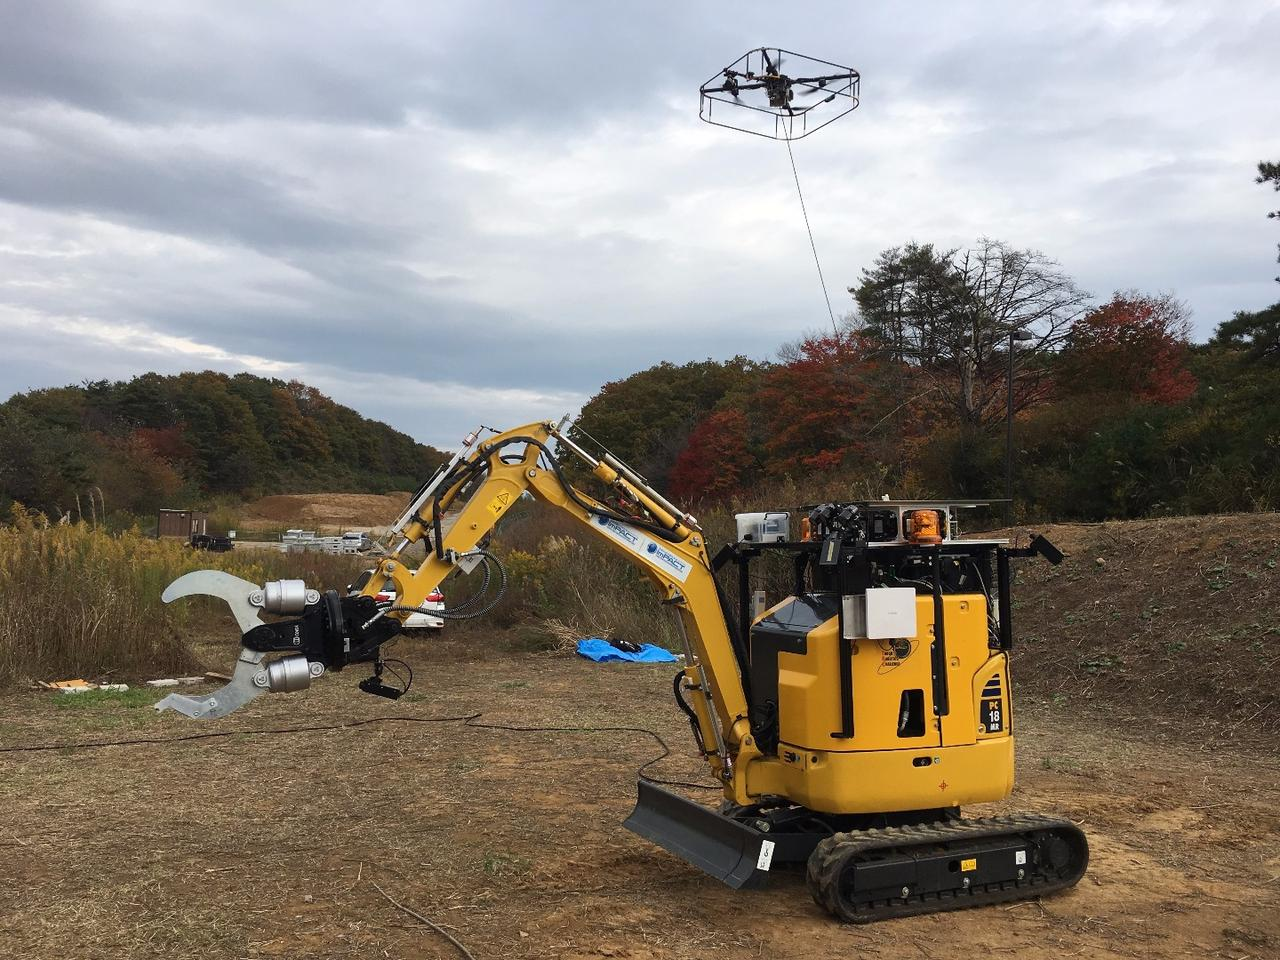 Situational awareness is a big factor at disaster sites, so the machine is also equipped with a remote-control camera-toting tethered quadcopter drone